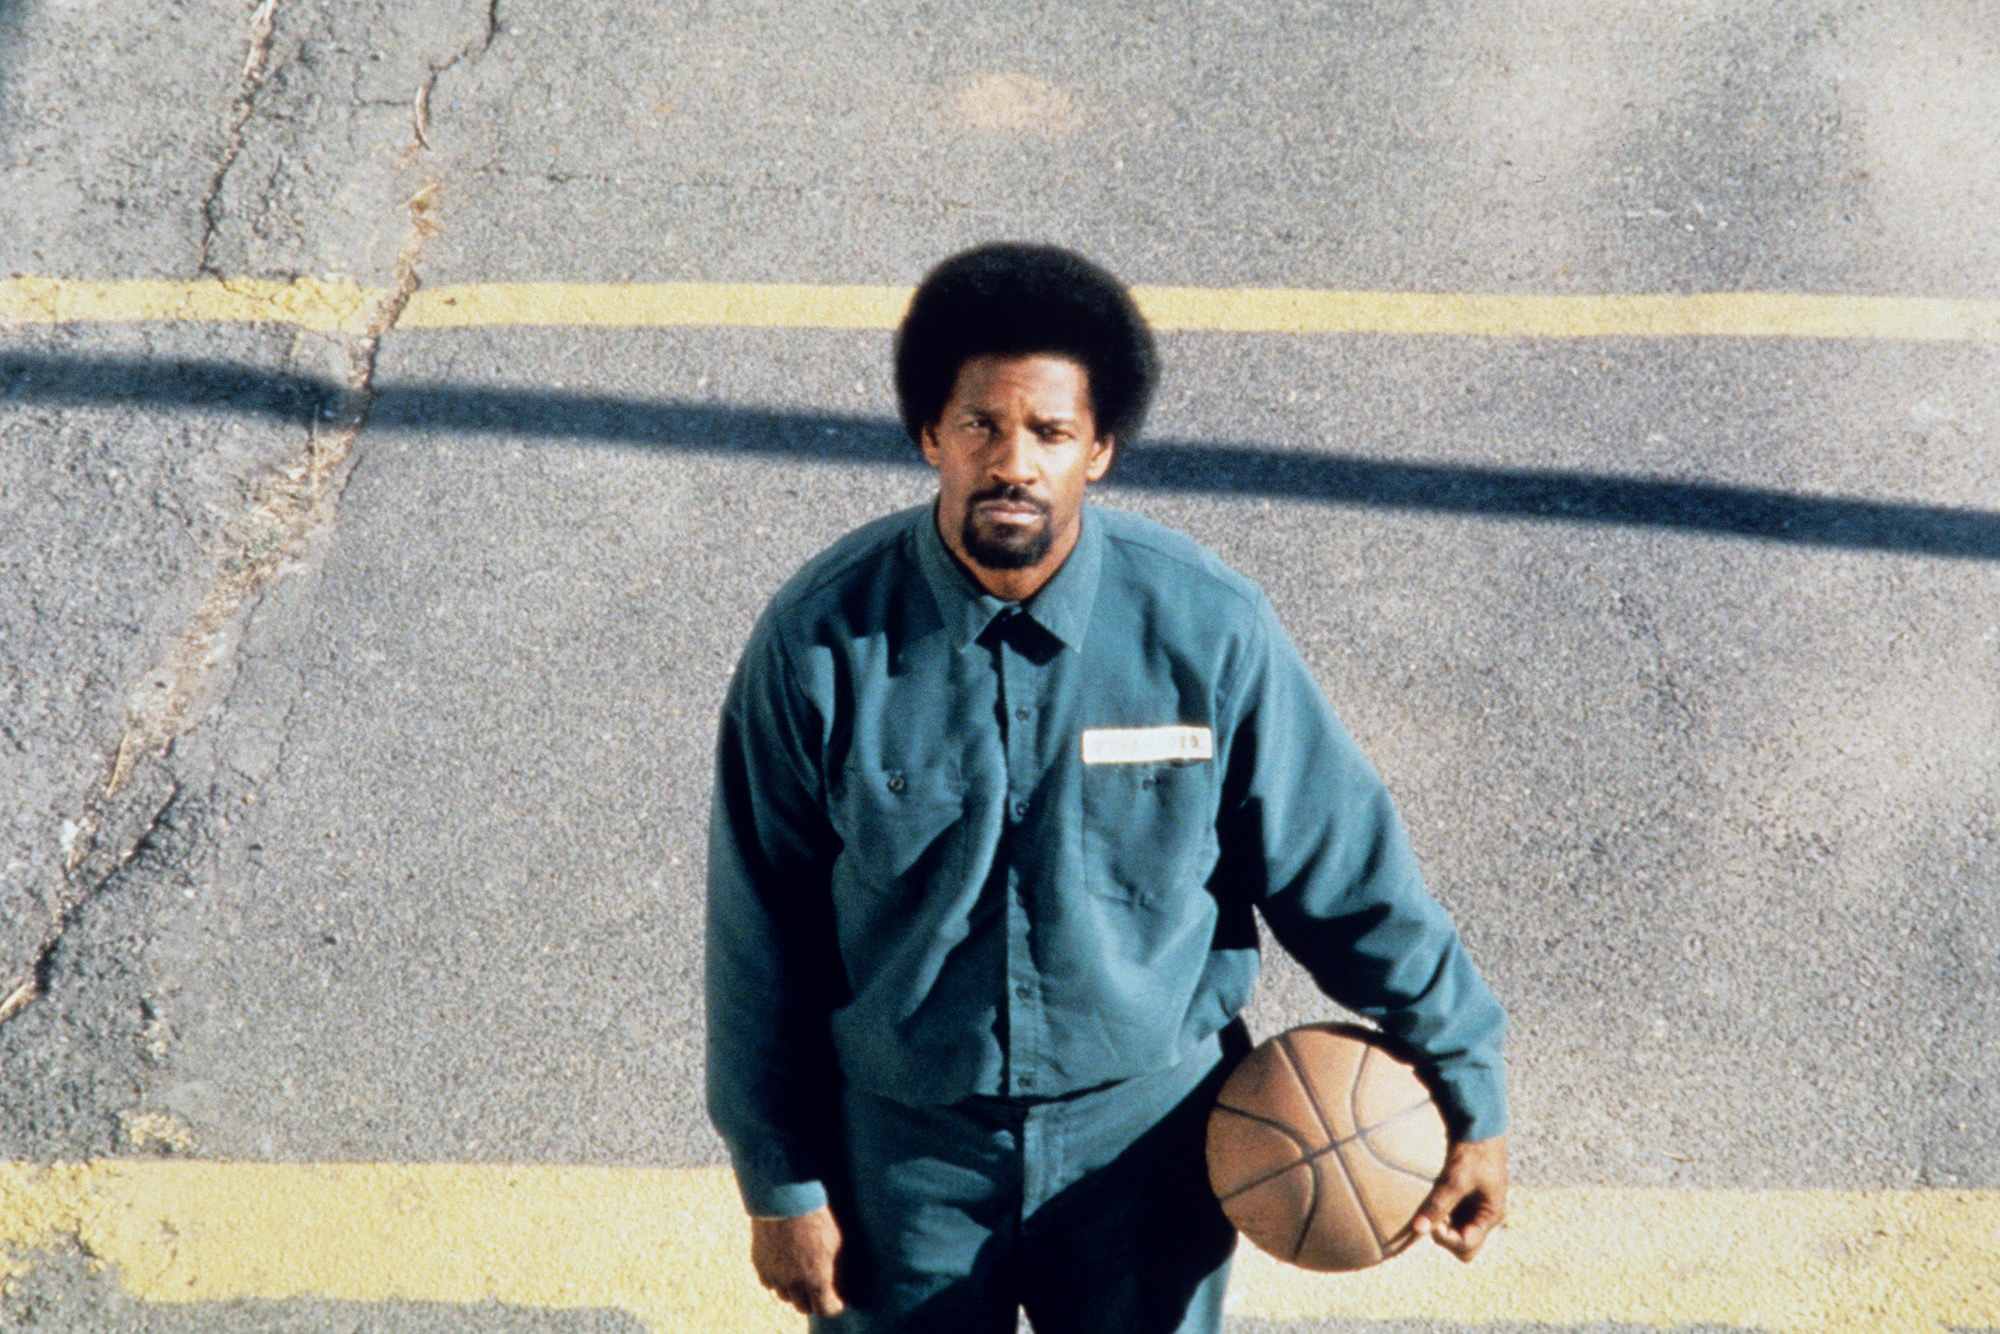 denzel-washington-nel-film-he-got-game-1600448684.jpg